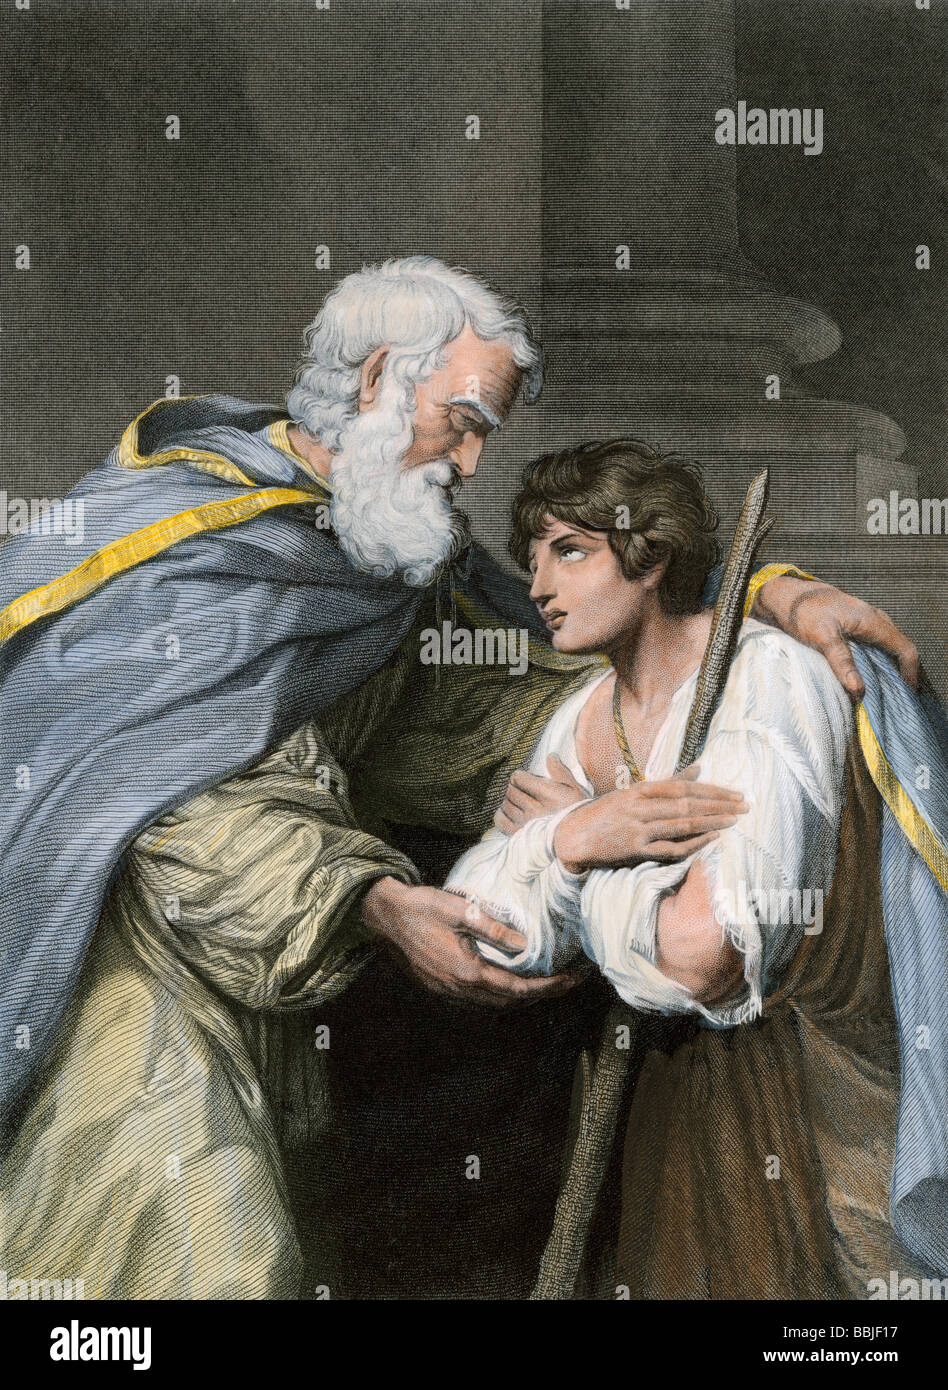 Prodigal son returns home and asks his father's forgiveness, a parable in the biblical Book of Luke. Hand-colored - Stock Image